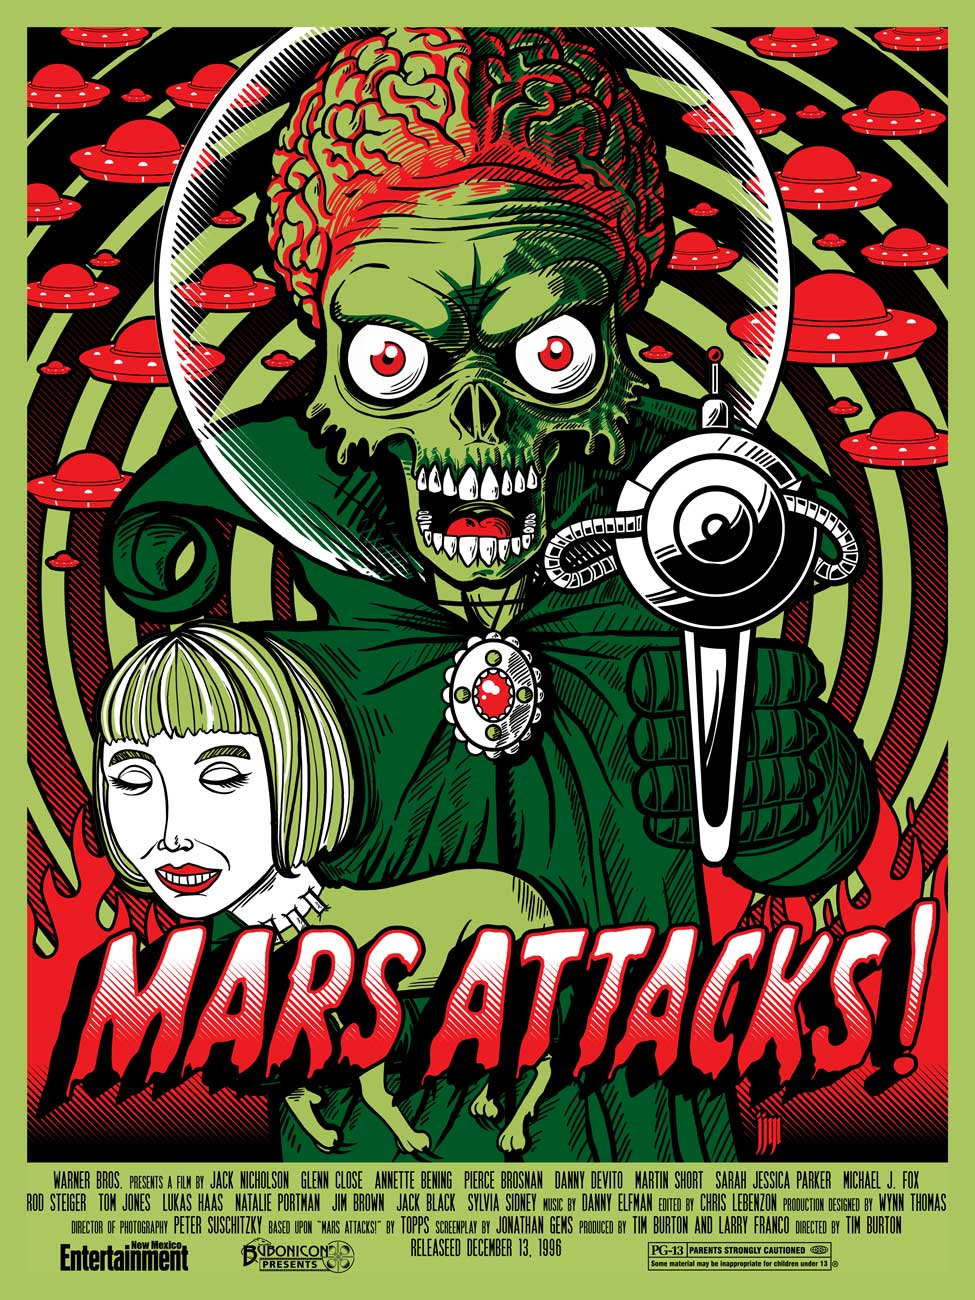 Mars_Attacks_Poster.jpg